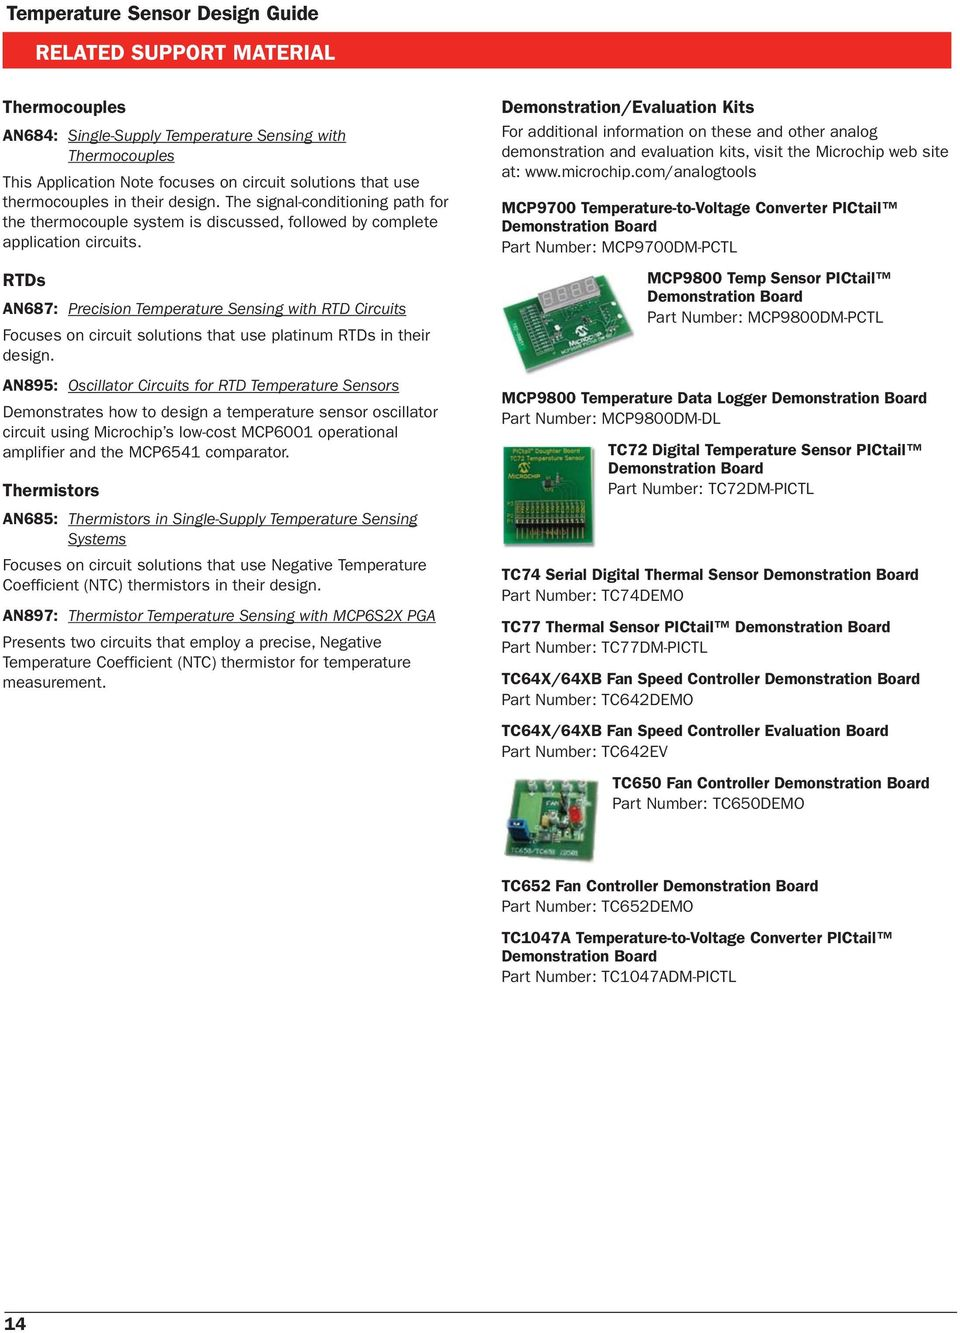 Temperature Sensor Design Guide Pdf Thermometer Circuit Schematic Using Operational Amplifiers Tds An687 Precision Sensing With Td Circuits Focuses On Solutions That Use Platinum